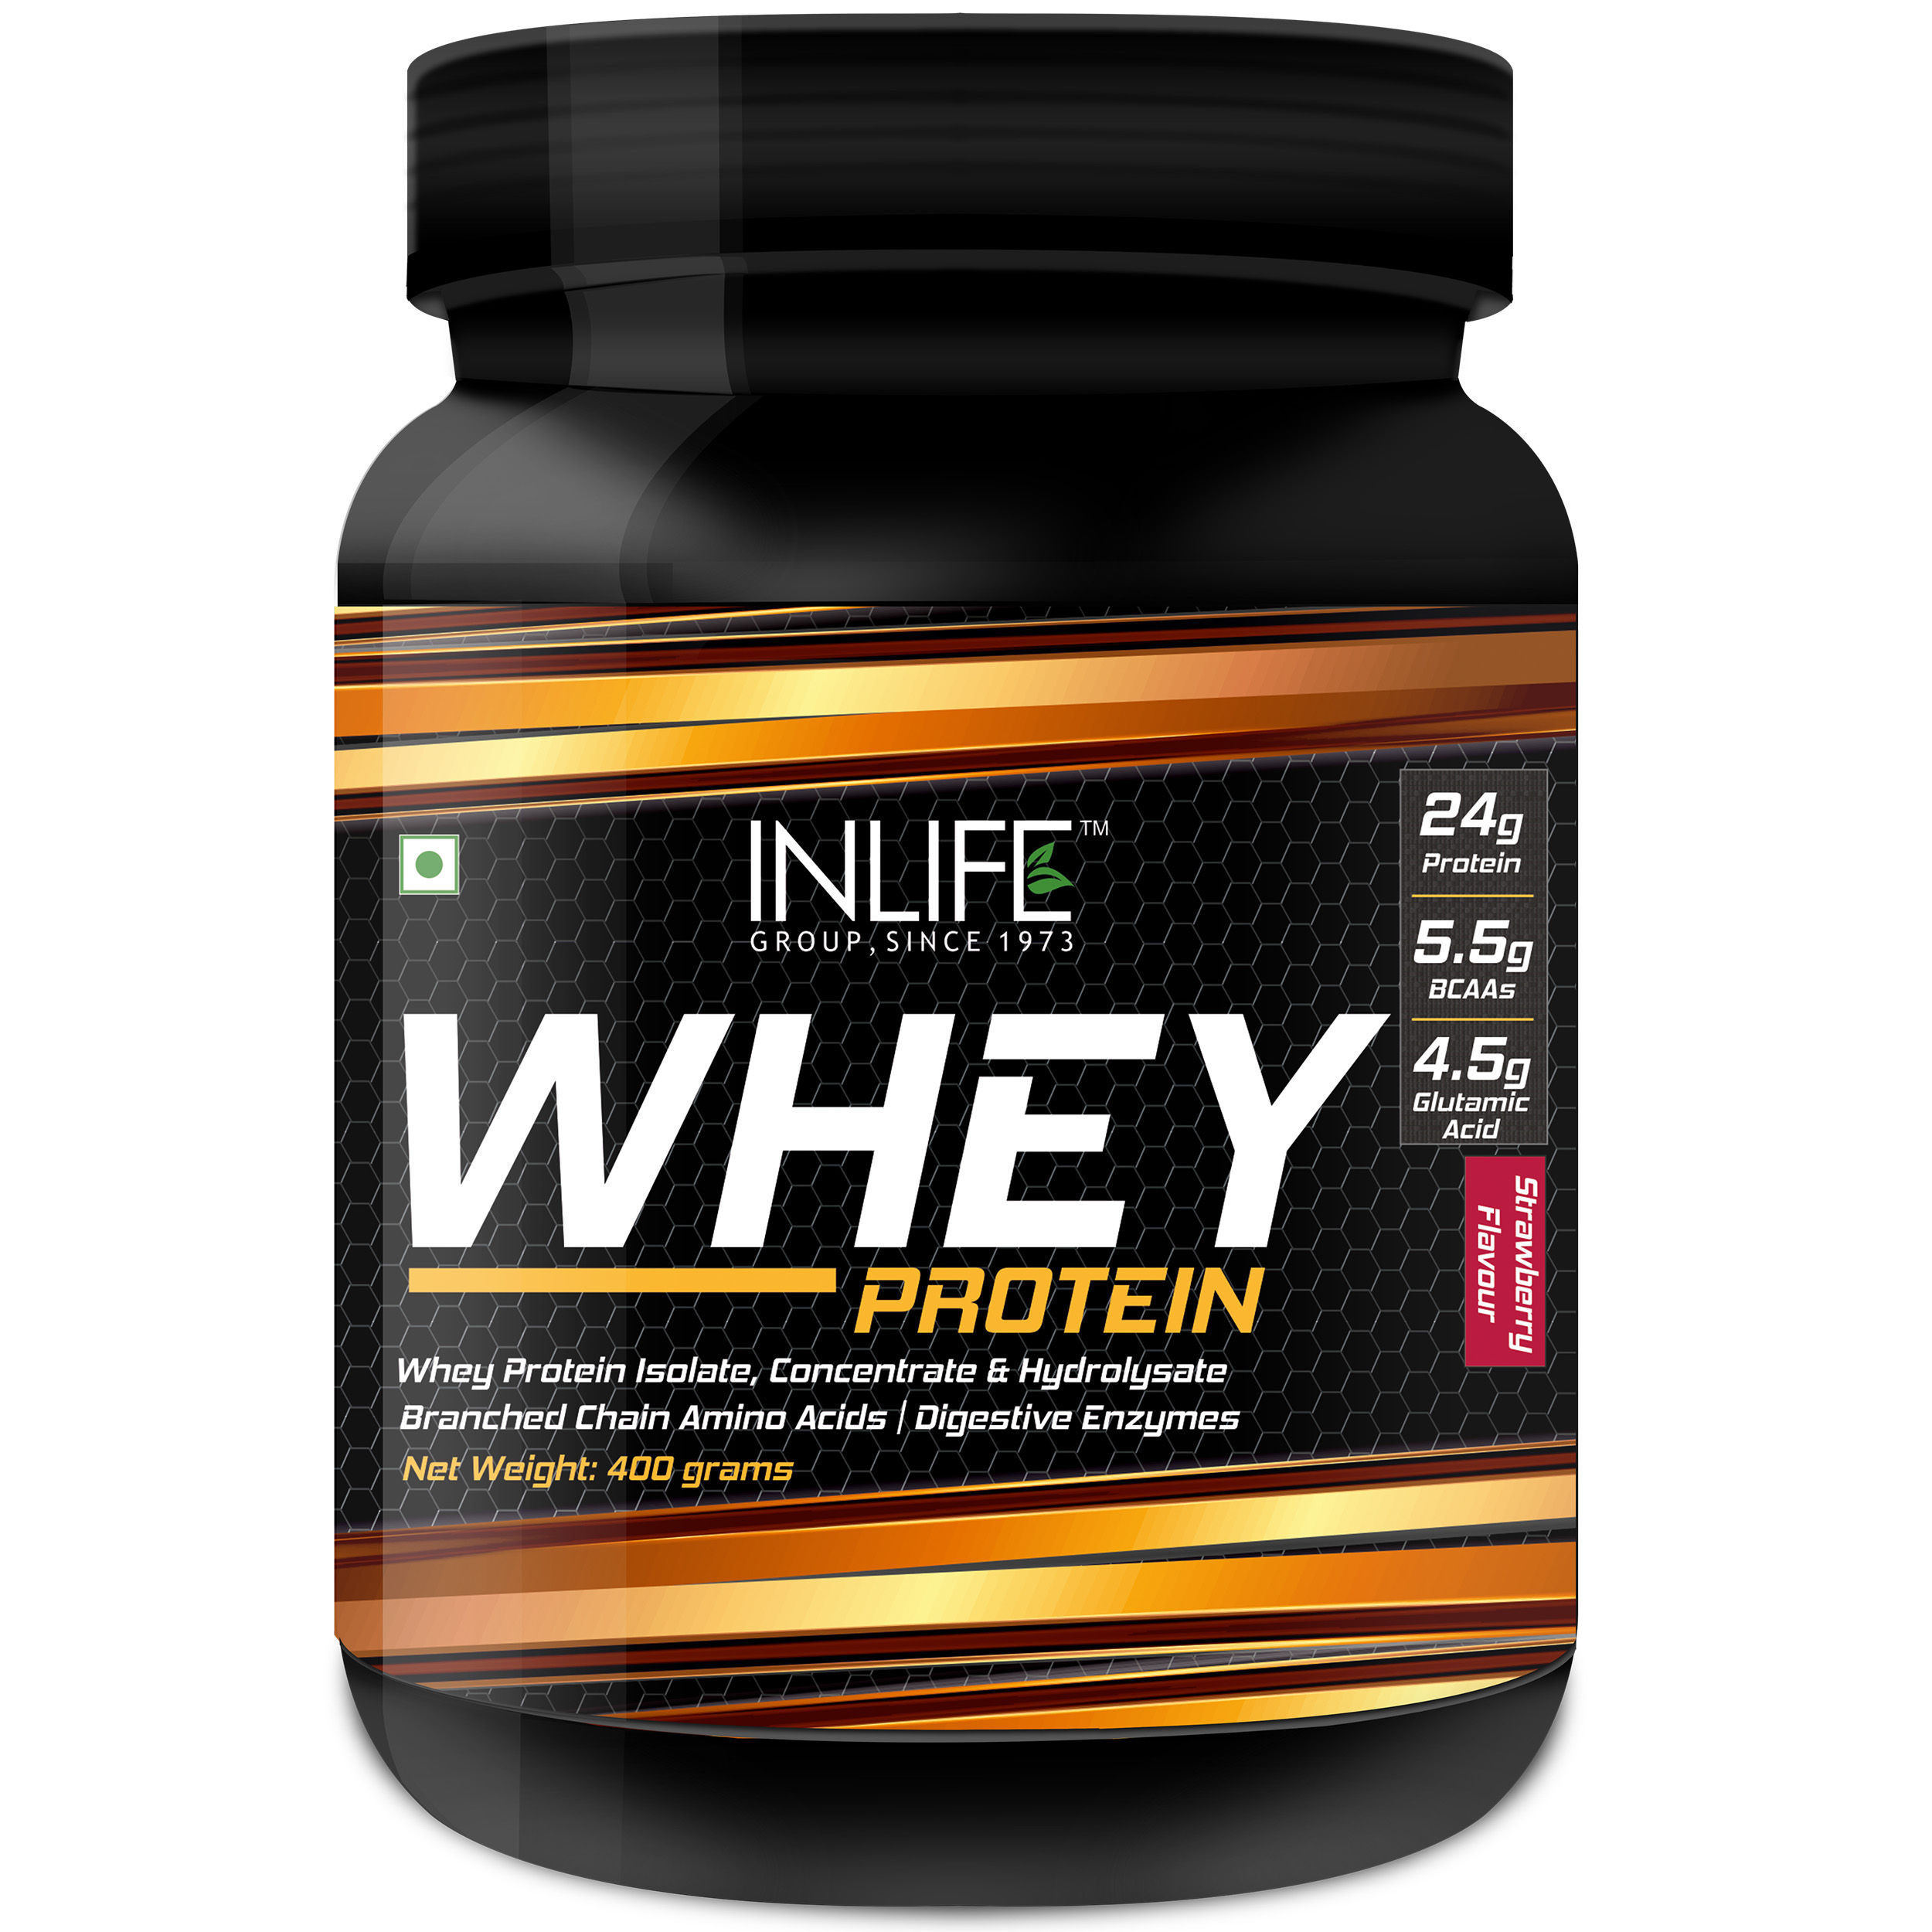 INLIFE Whey Protein Powder With Isolate Concentrate Hydrolysate & Digestive Enzymes - 400gm (Strawberry)